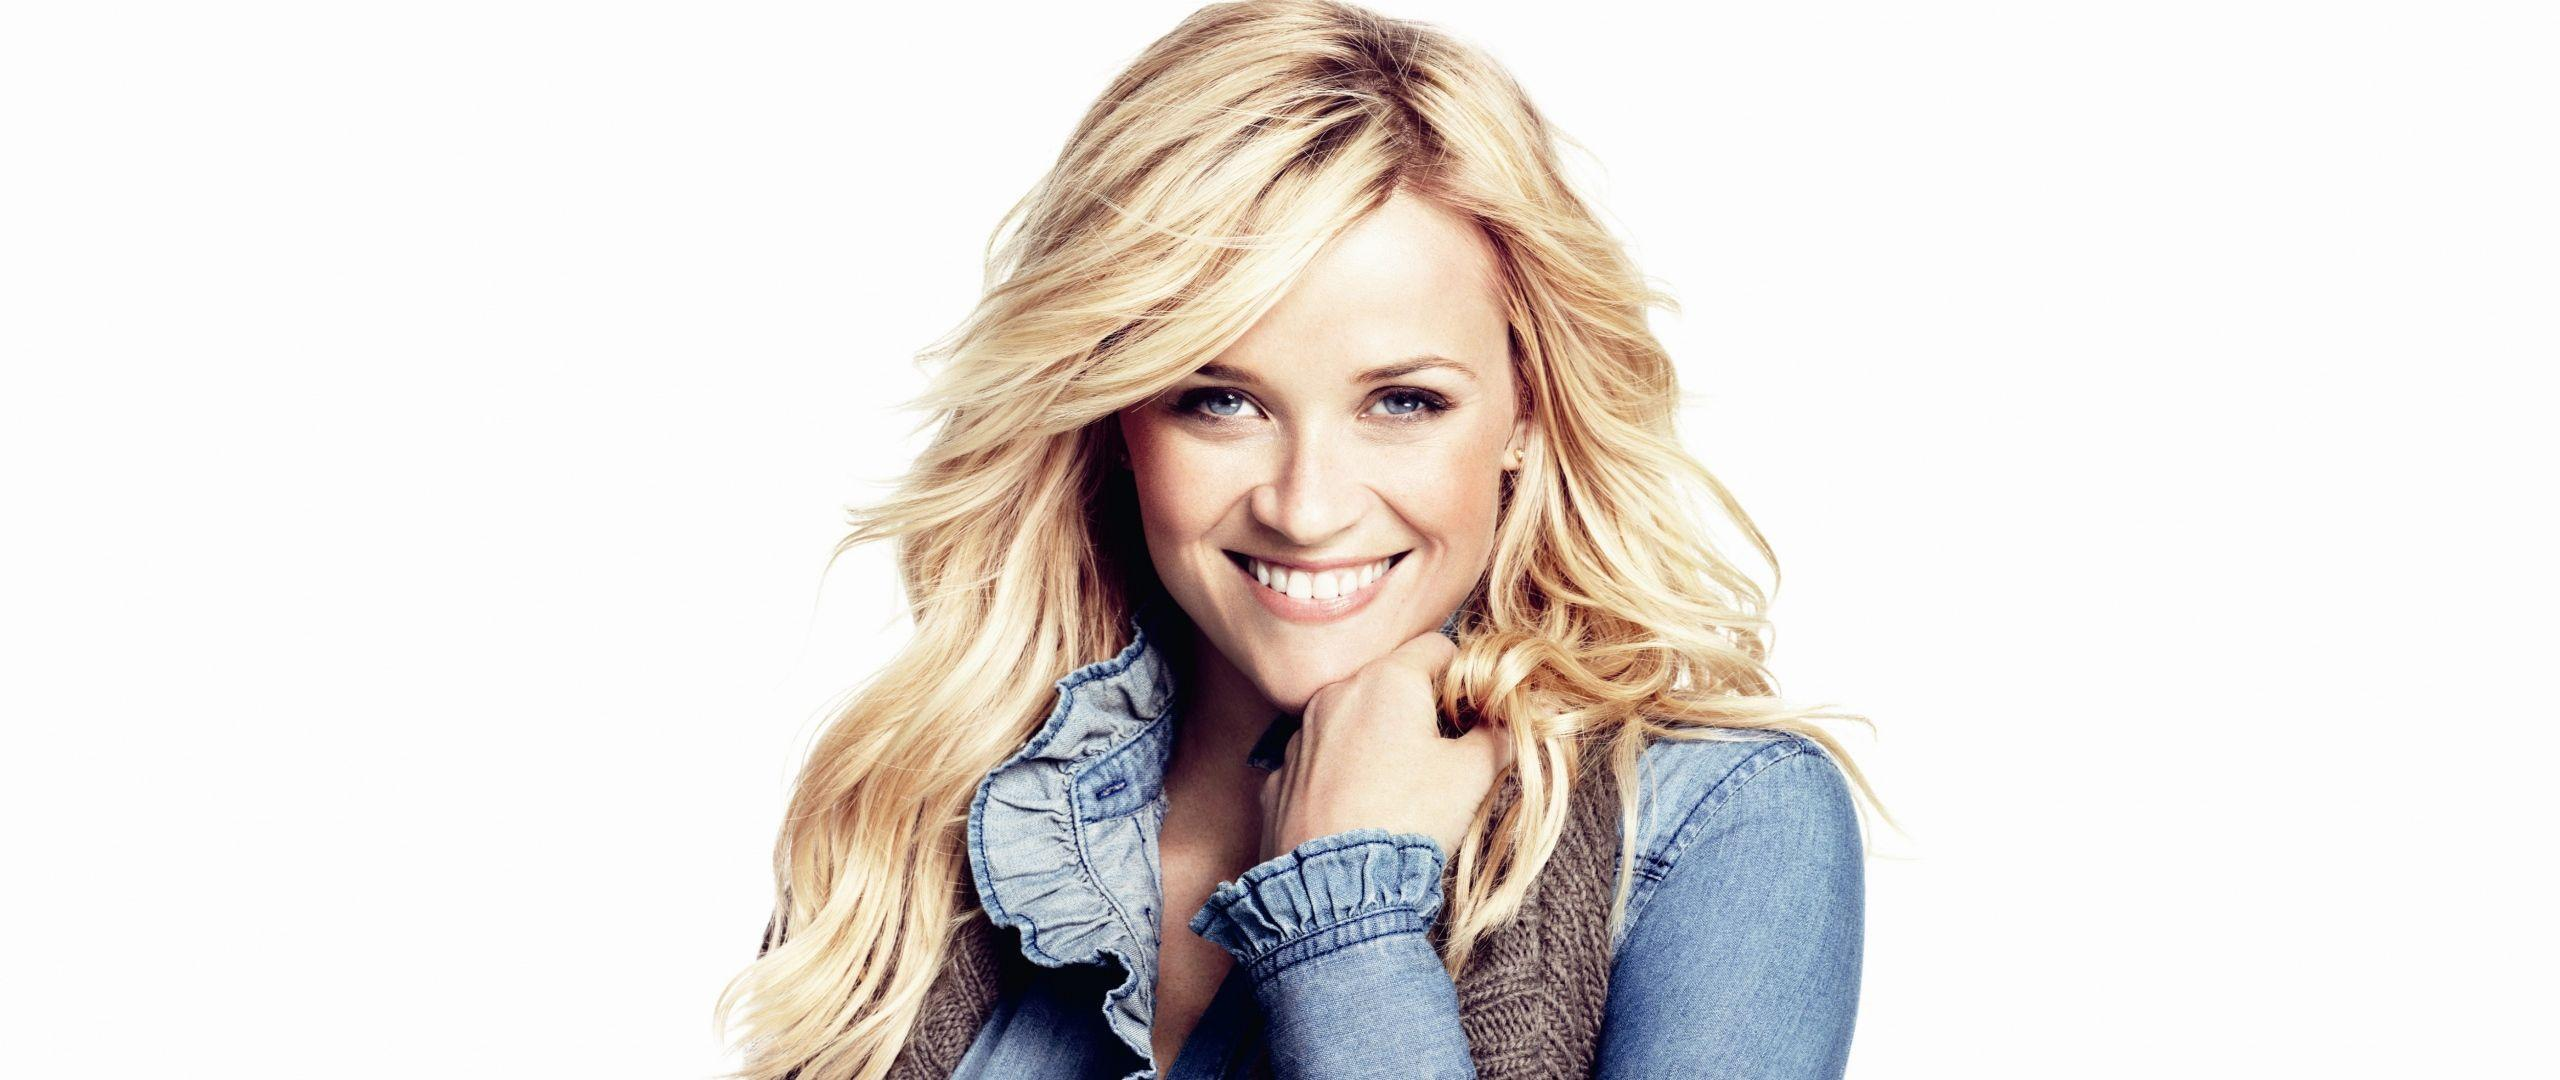 Download Wallpaper 2560x1080 Reese witherspoon, Actress, Model ...